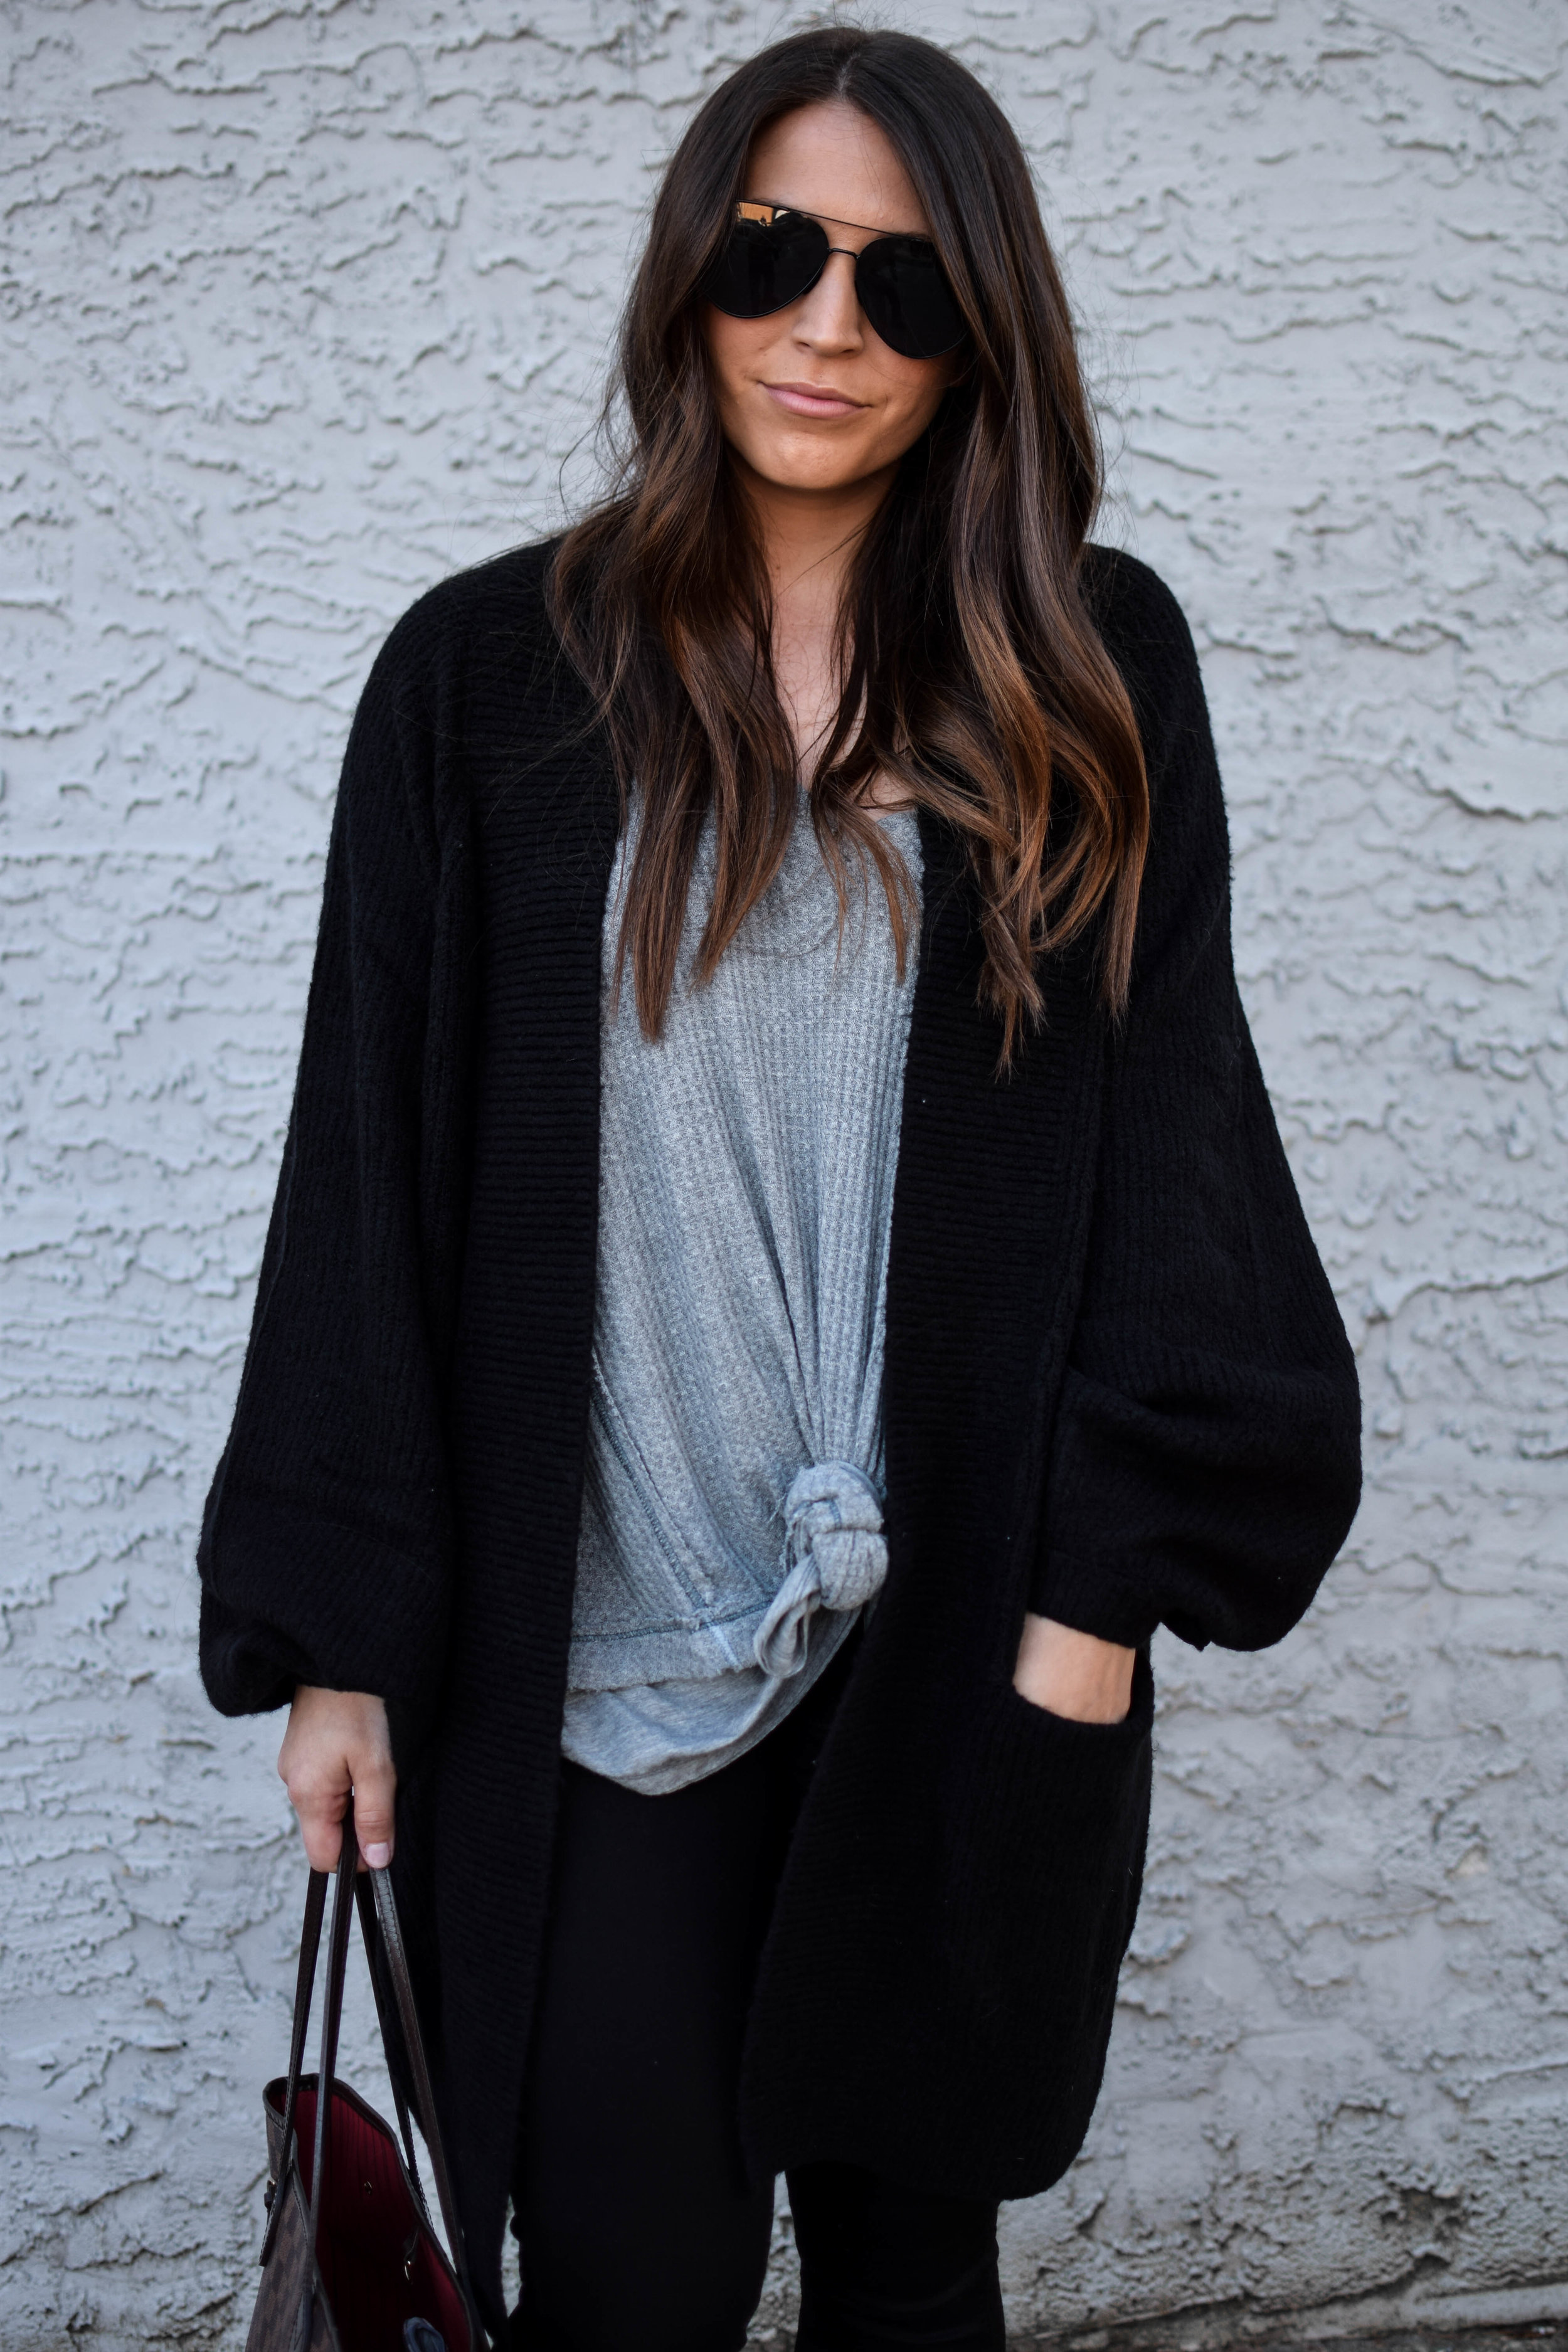 fall fashion / fall outfit idea / fall outfit inspiration / fall feels / fall vibes / long black cardigan with balloon sleeves / black denim / grey thermal / fall layers